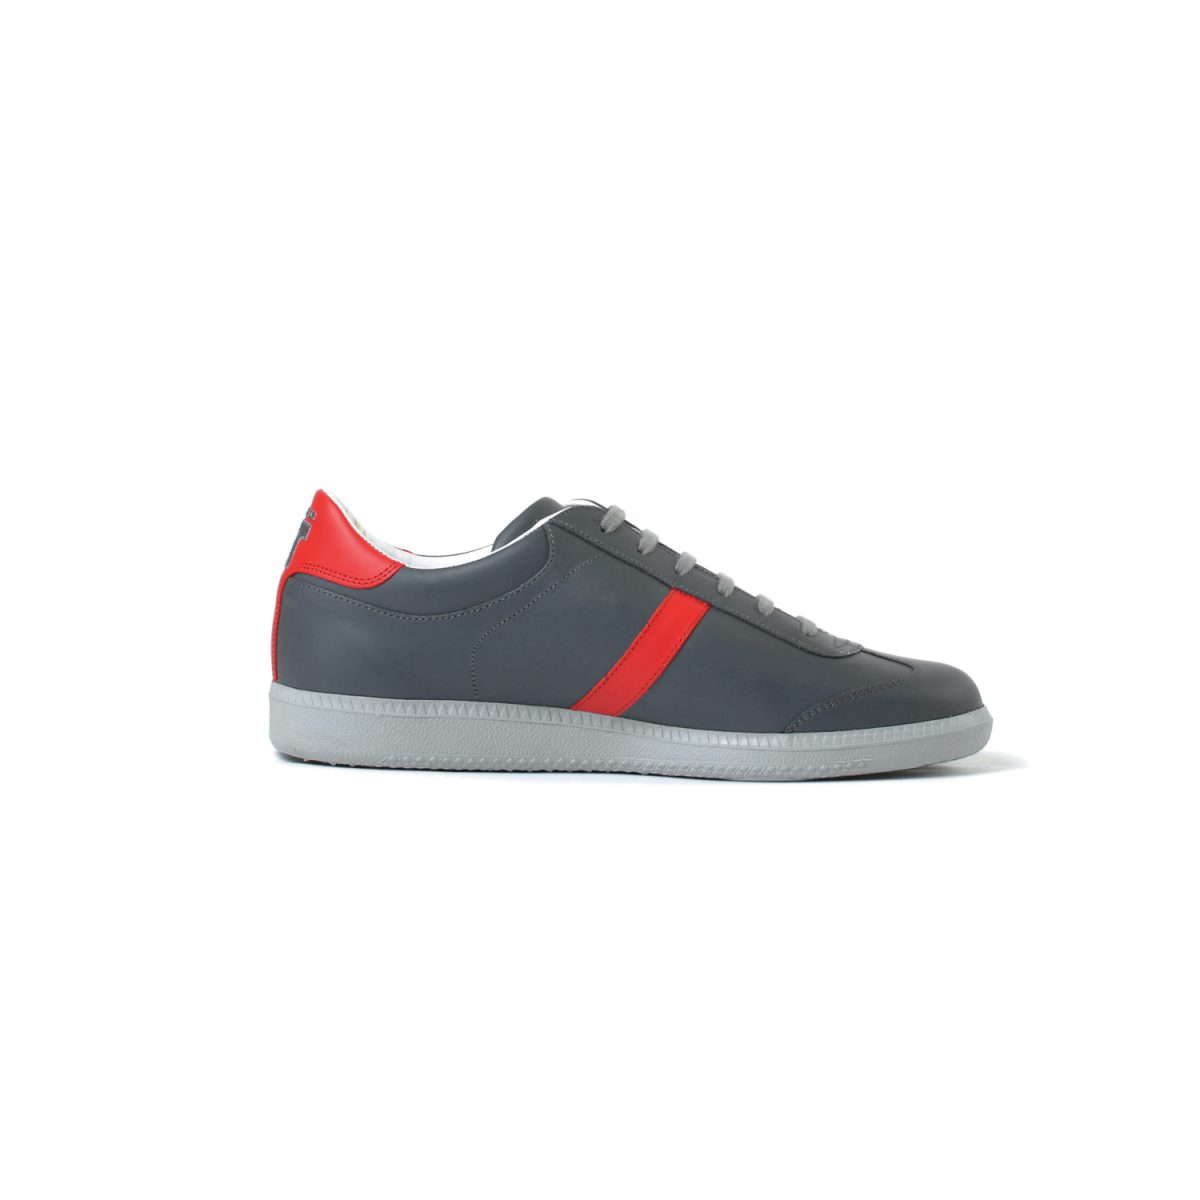 Tisza shoes - Compakt - Grey-red